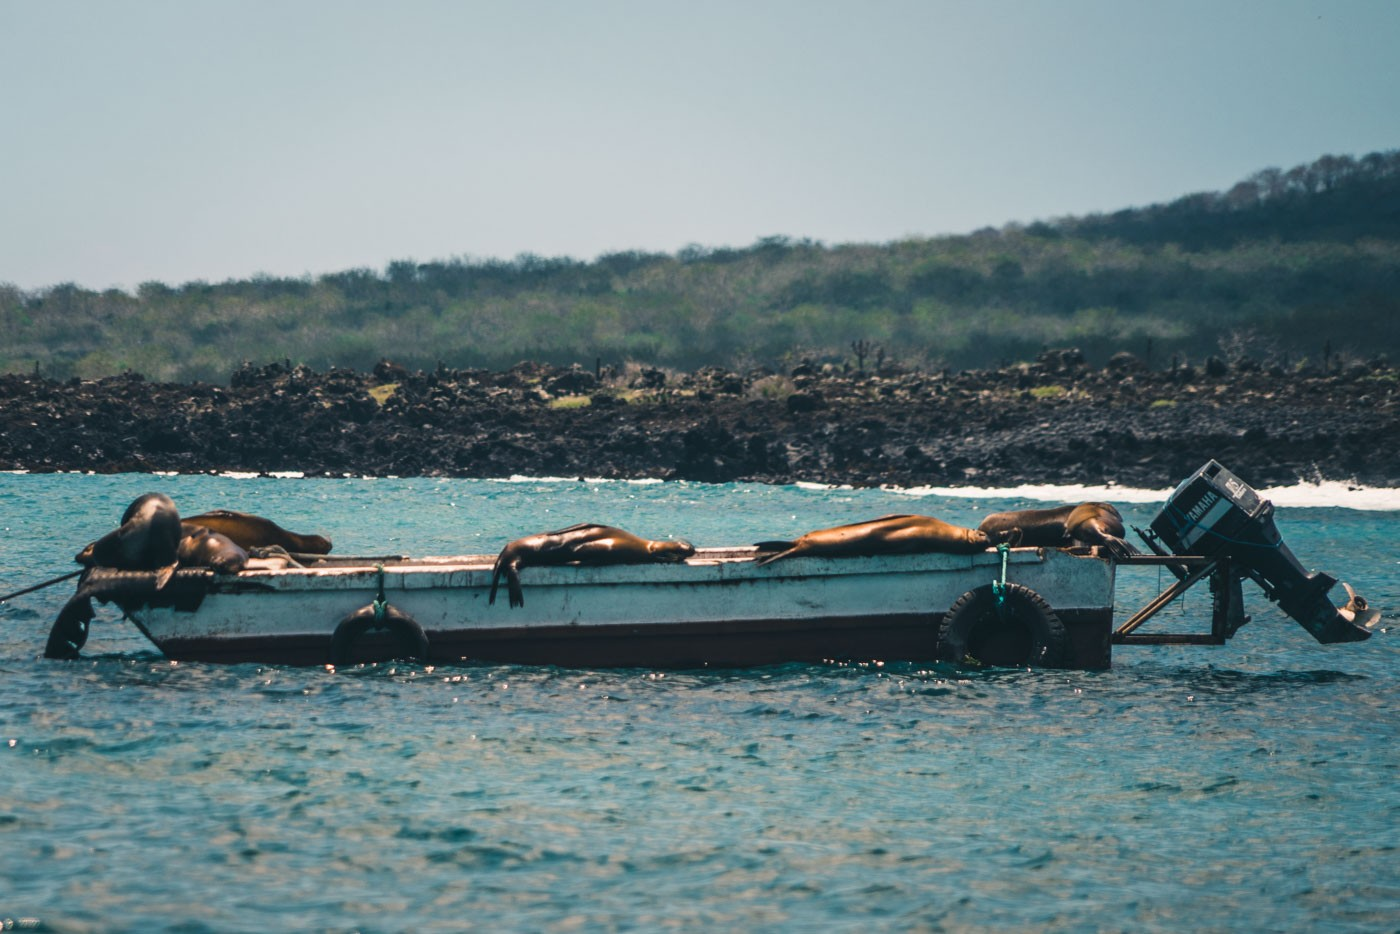 A group of lazy sea lions catching the mid day rays aboard a fishing boat on San Cristobal Island. Galapagos